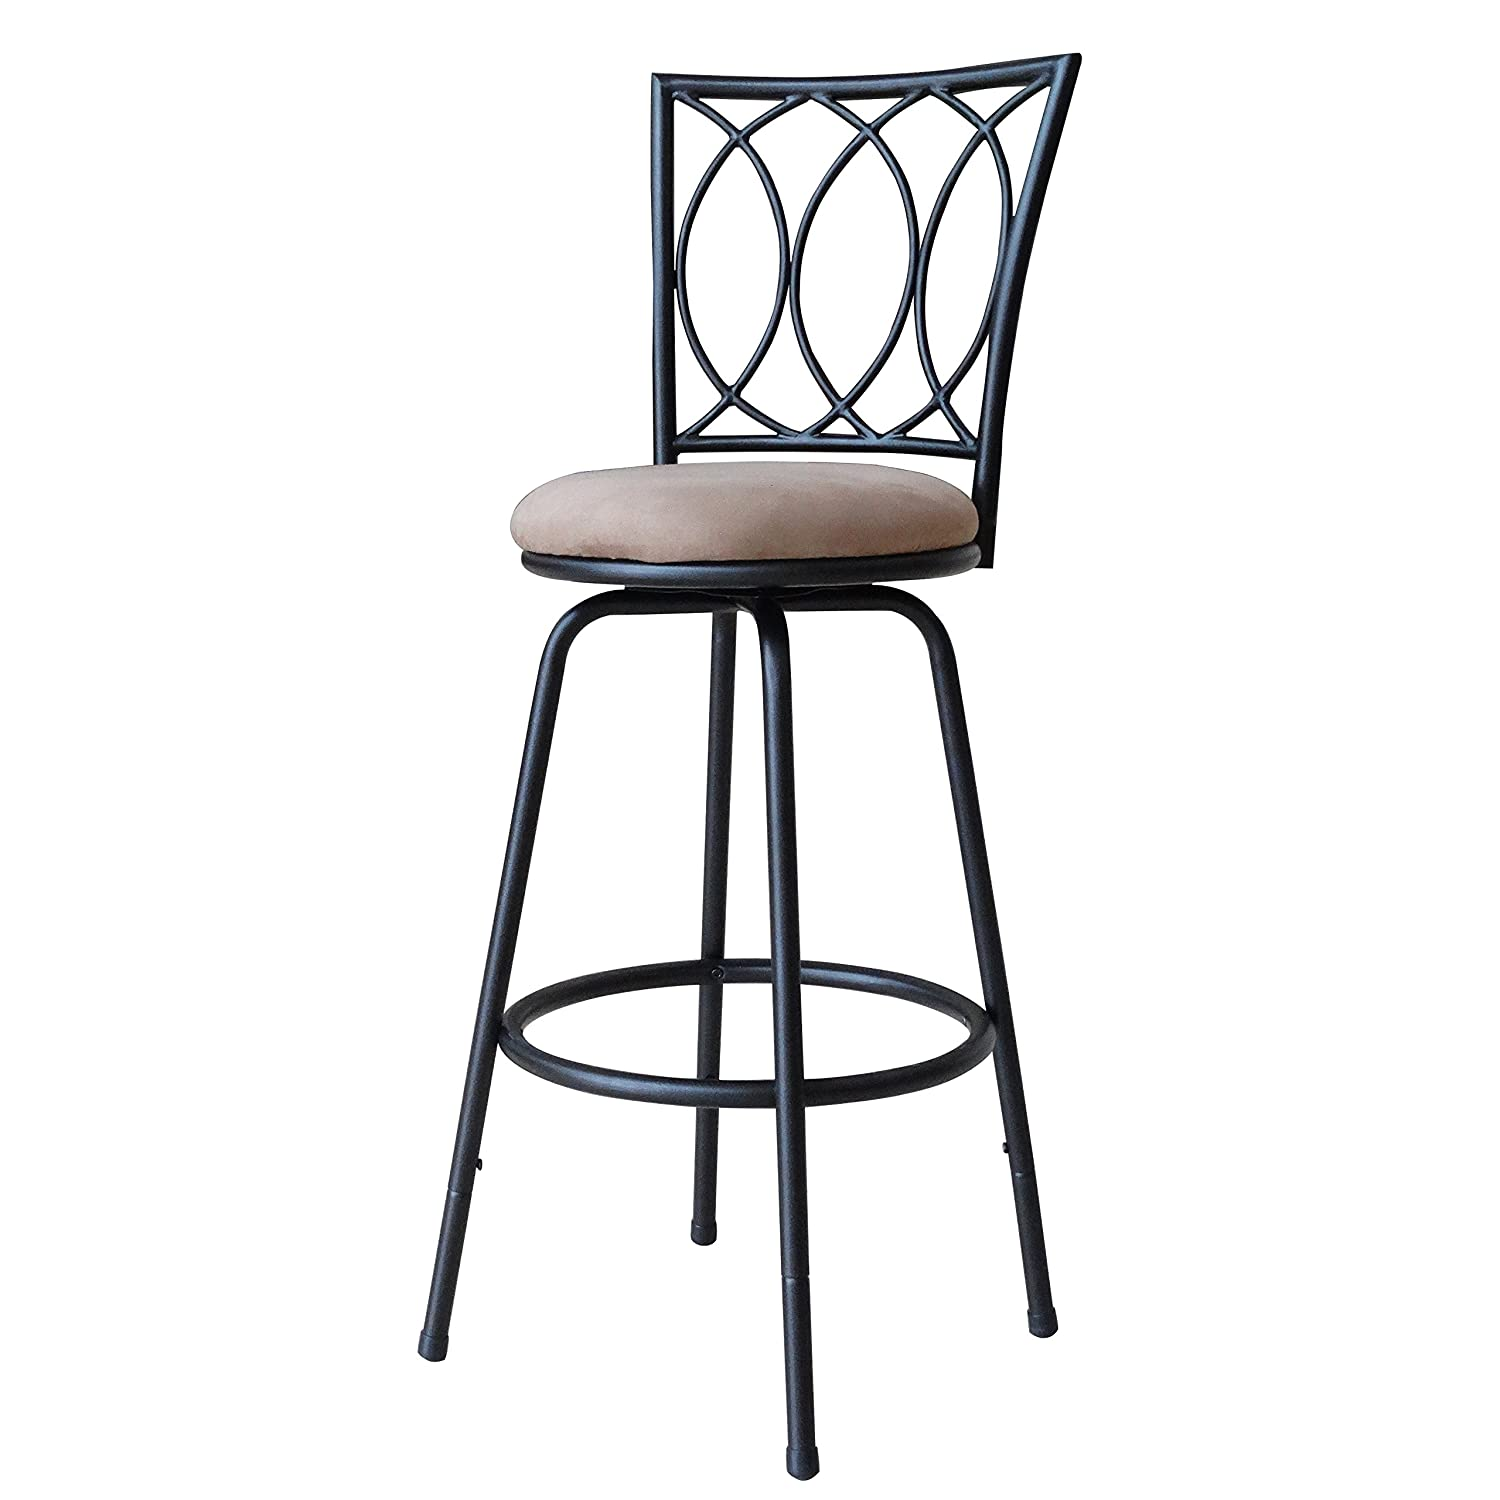 Roundhill Furniture Powder Coated Black Barstool